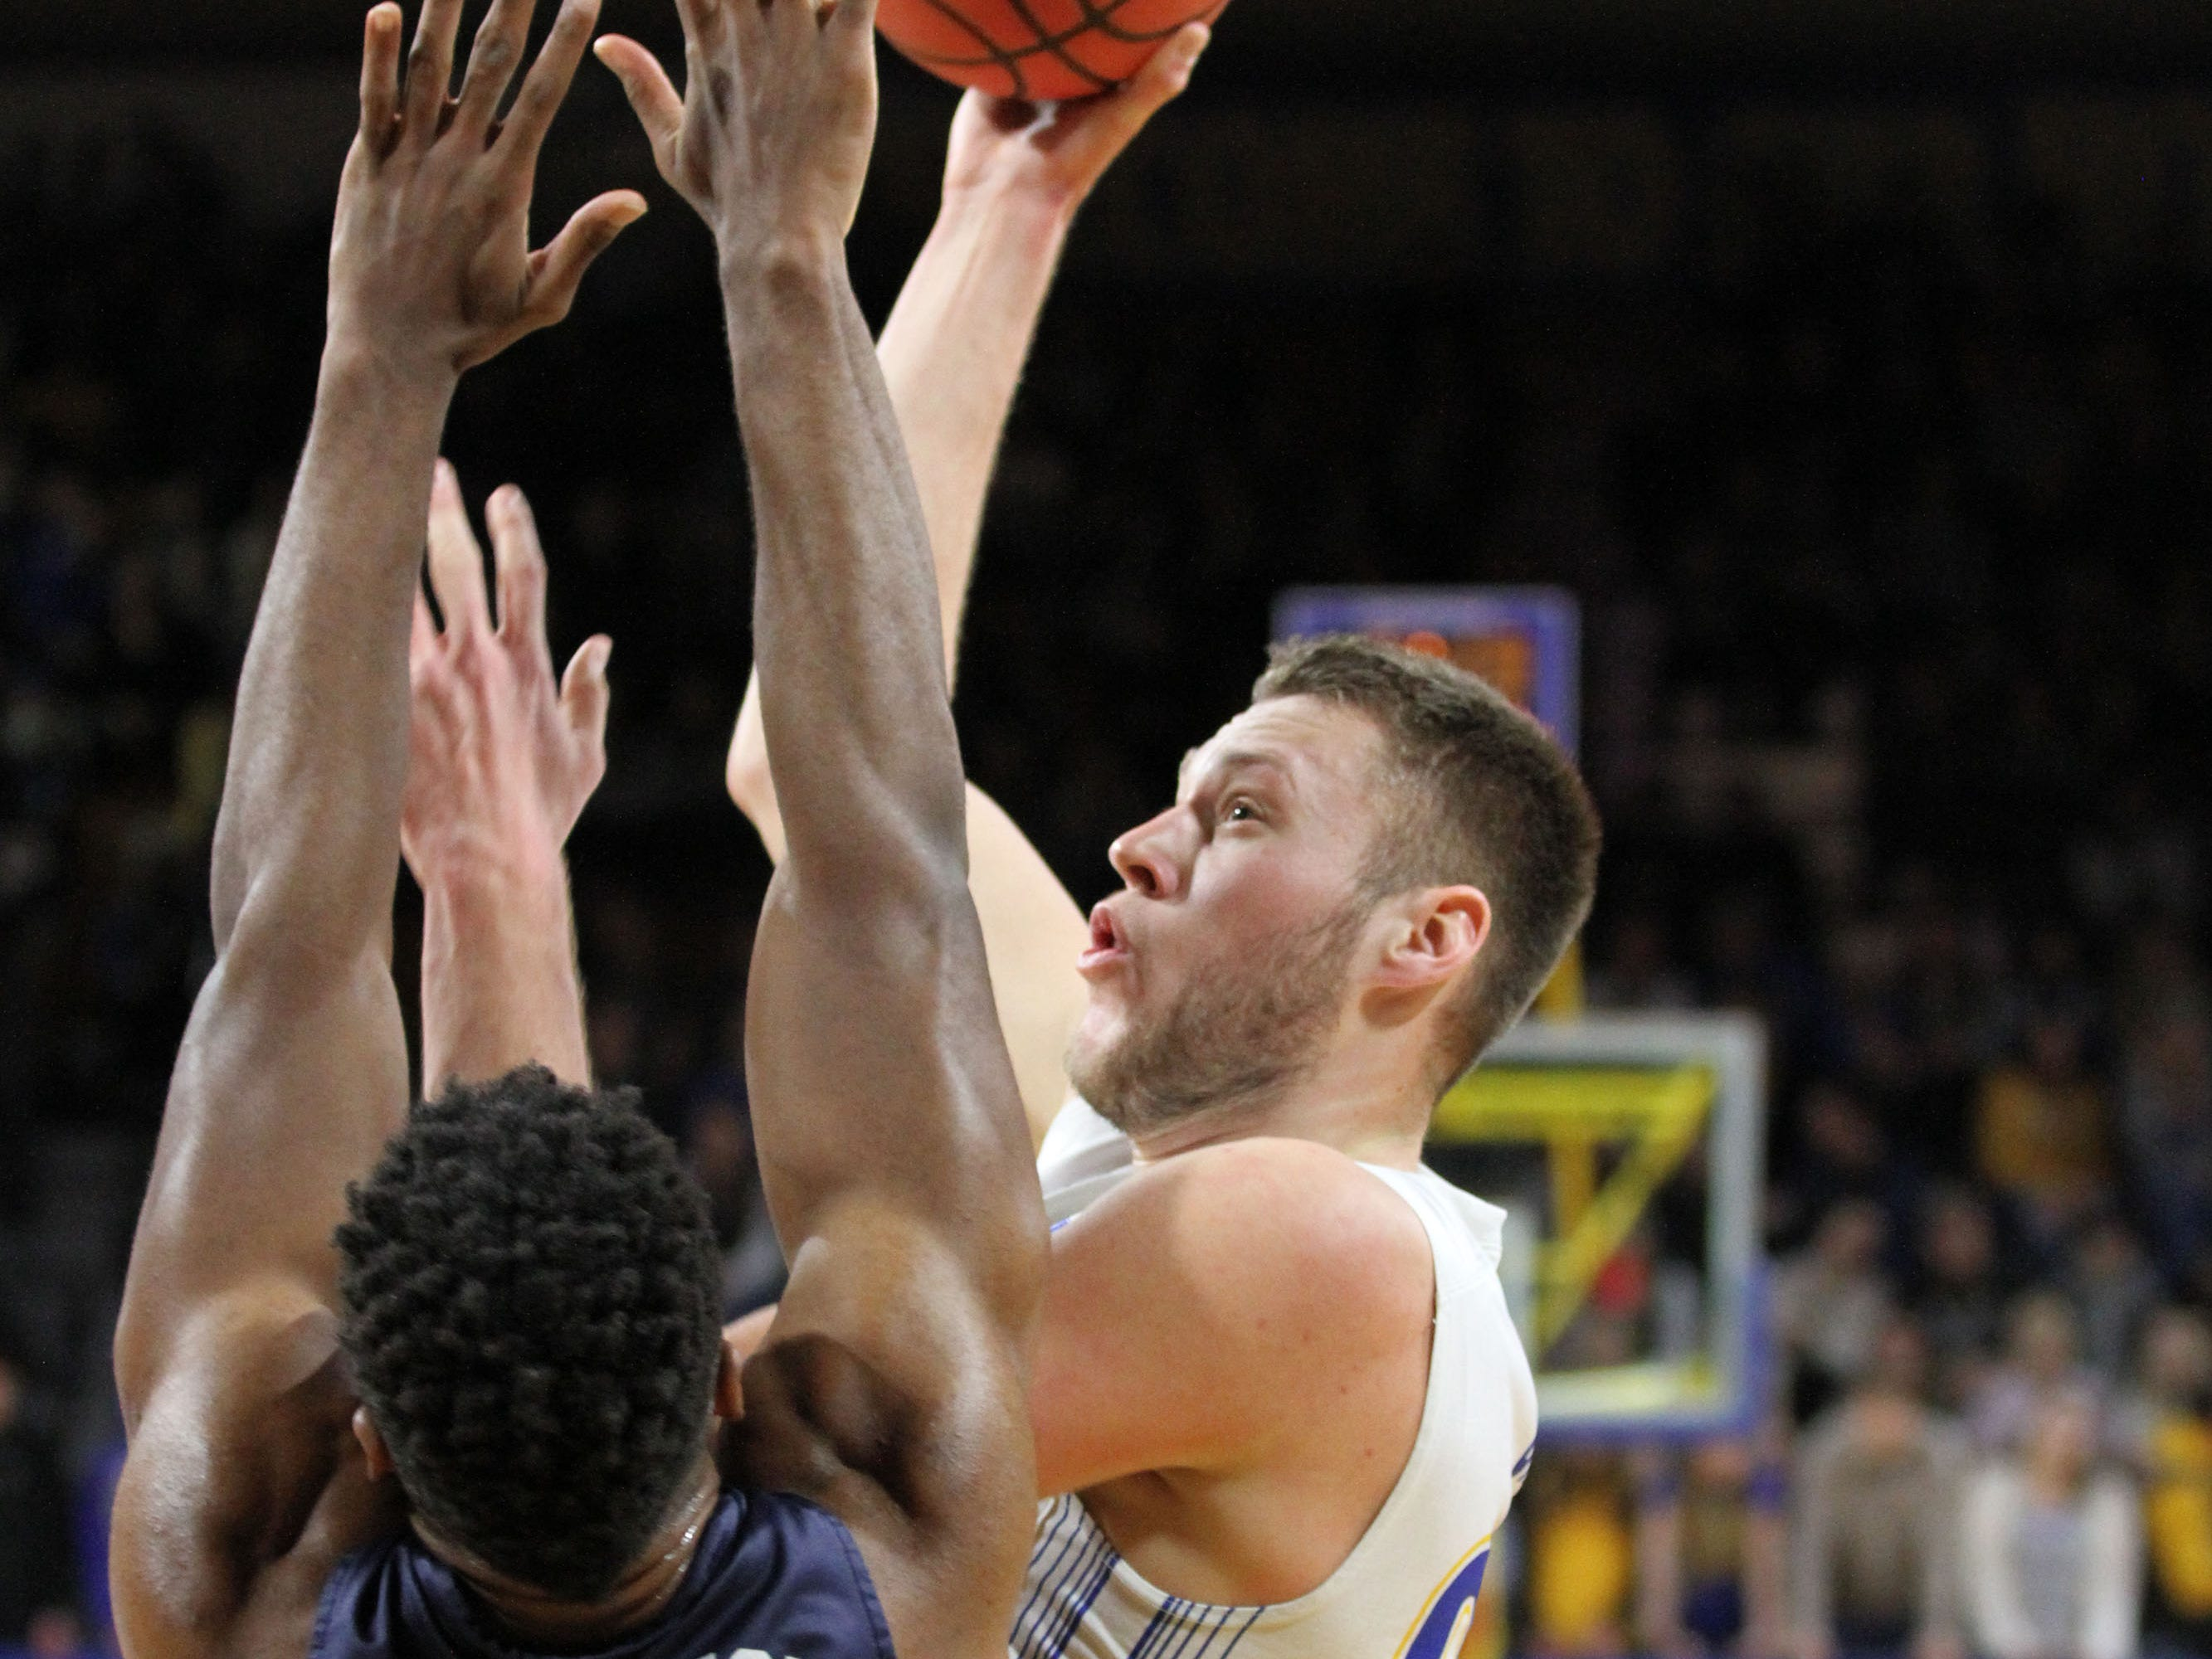 South Dakota State's Mike Daum (24) connects on a jumper in the paint over Oral Roberts' Emmanuel Nzekwesi during the first half of the Jackrabbits' matchup with the Golden Eagles Saturday afternoon at Frost Arena in Brookings.